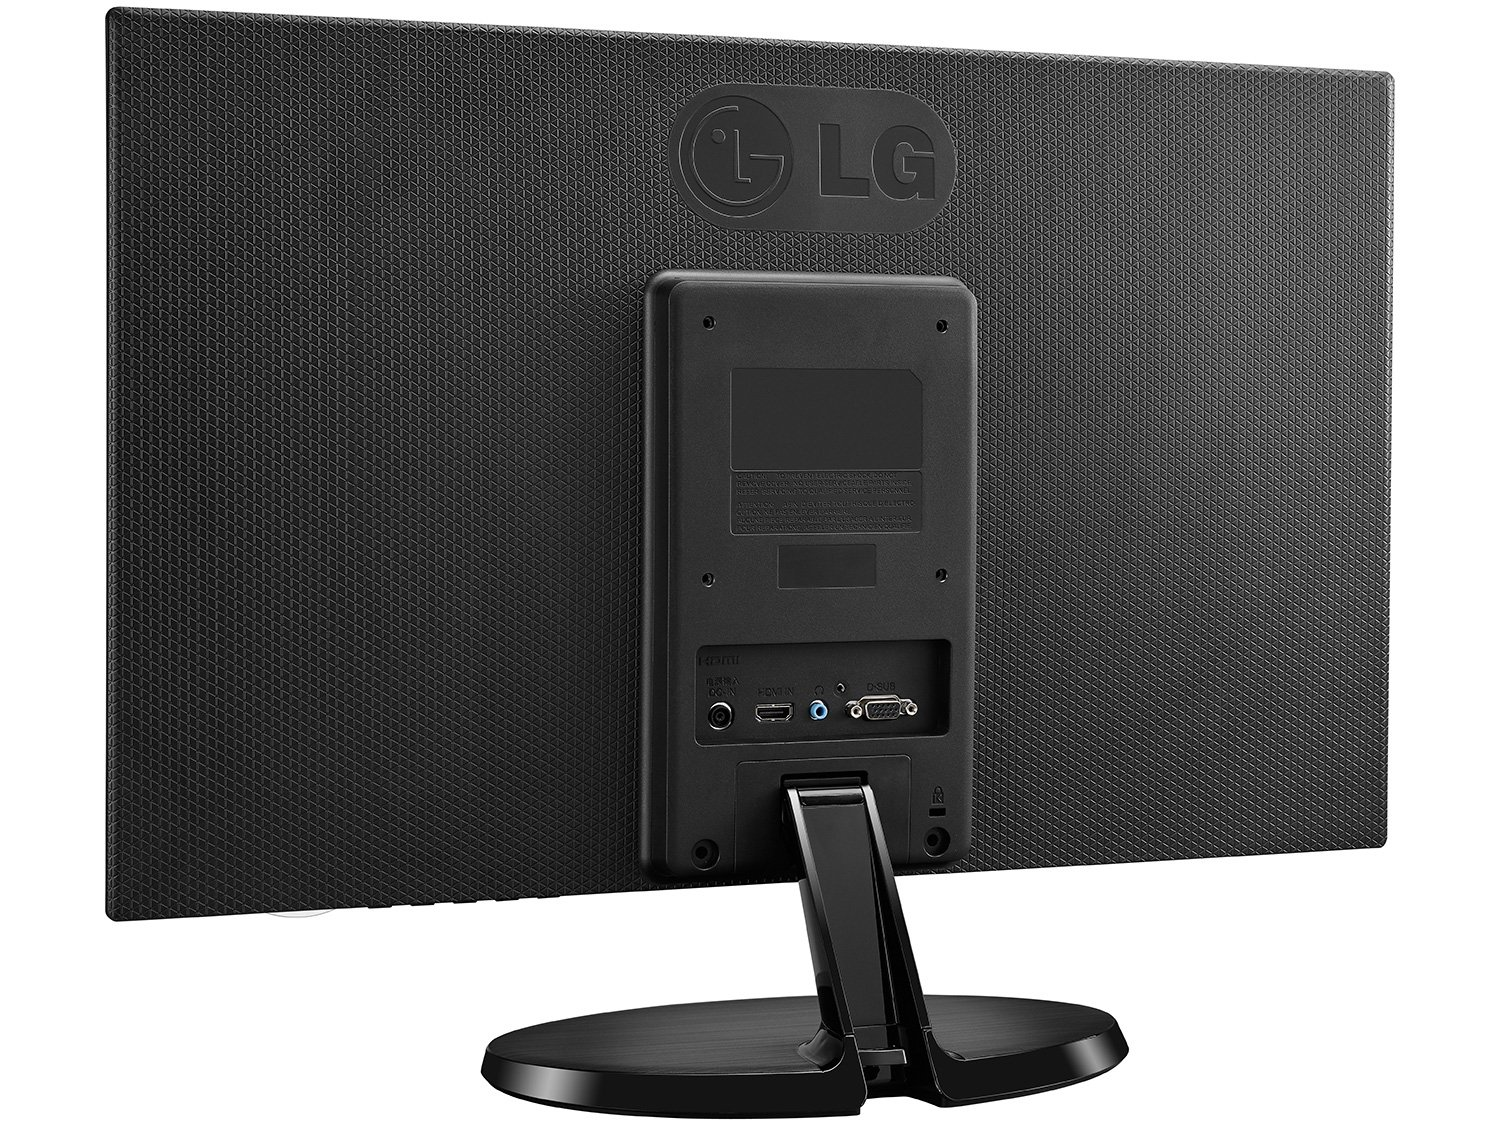 Foto 7 - Monitor LG LED 23,6 Full HD Widescreen - 24M38H-B